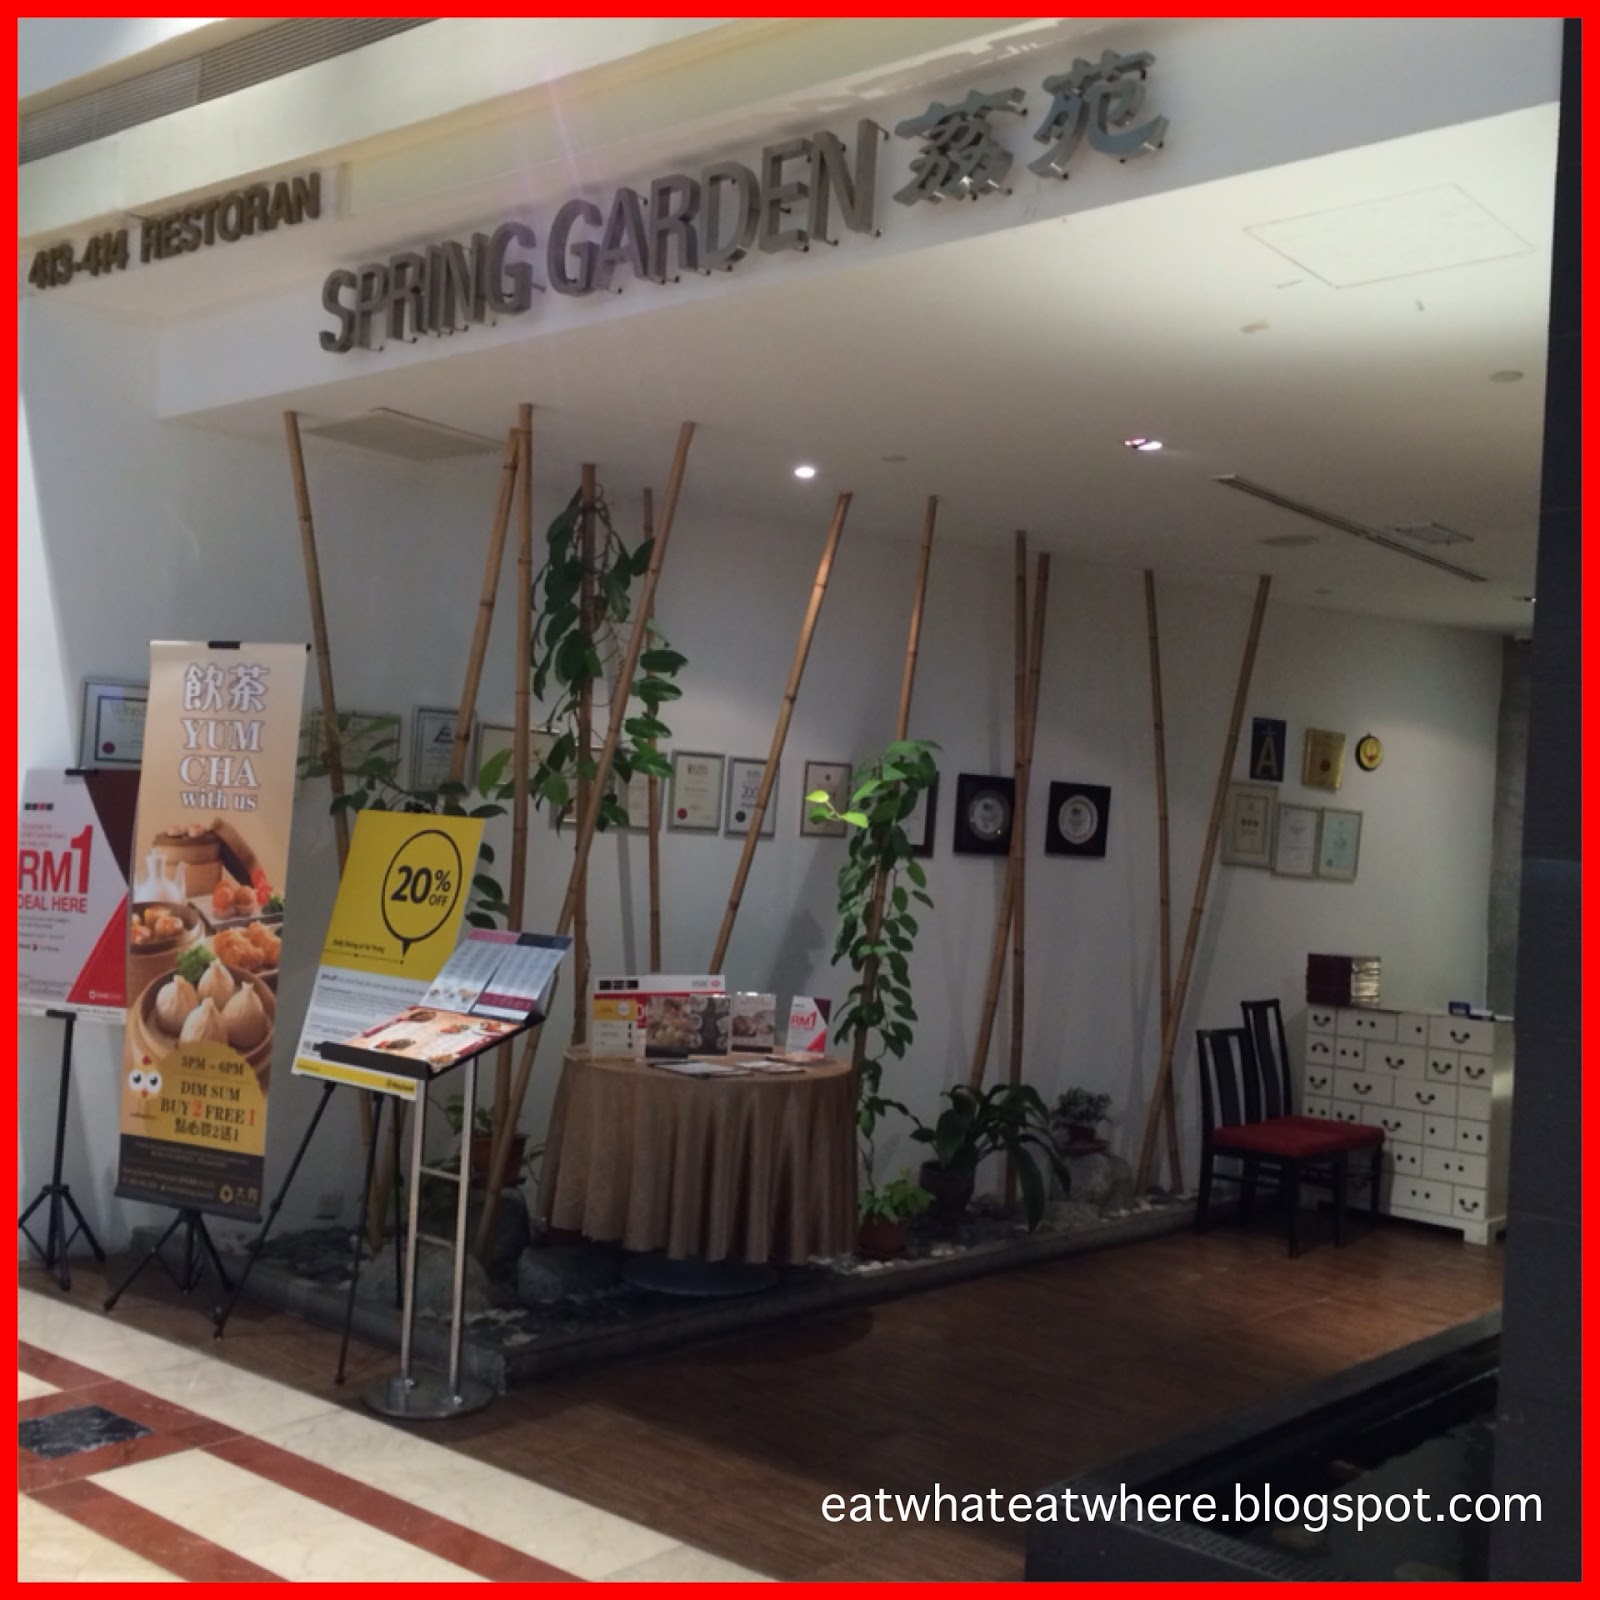 b5f33c0d7c96 Spring Garden   Suria KLCC. The cuisine of choice is almost always Chinese  when we want to accommodate a table of ten for a family dinner and it was  no ...